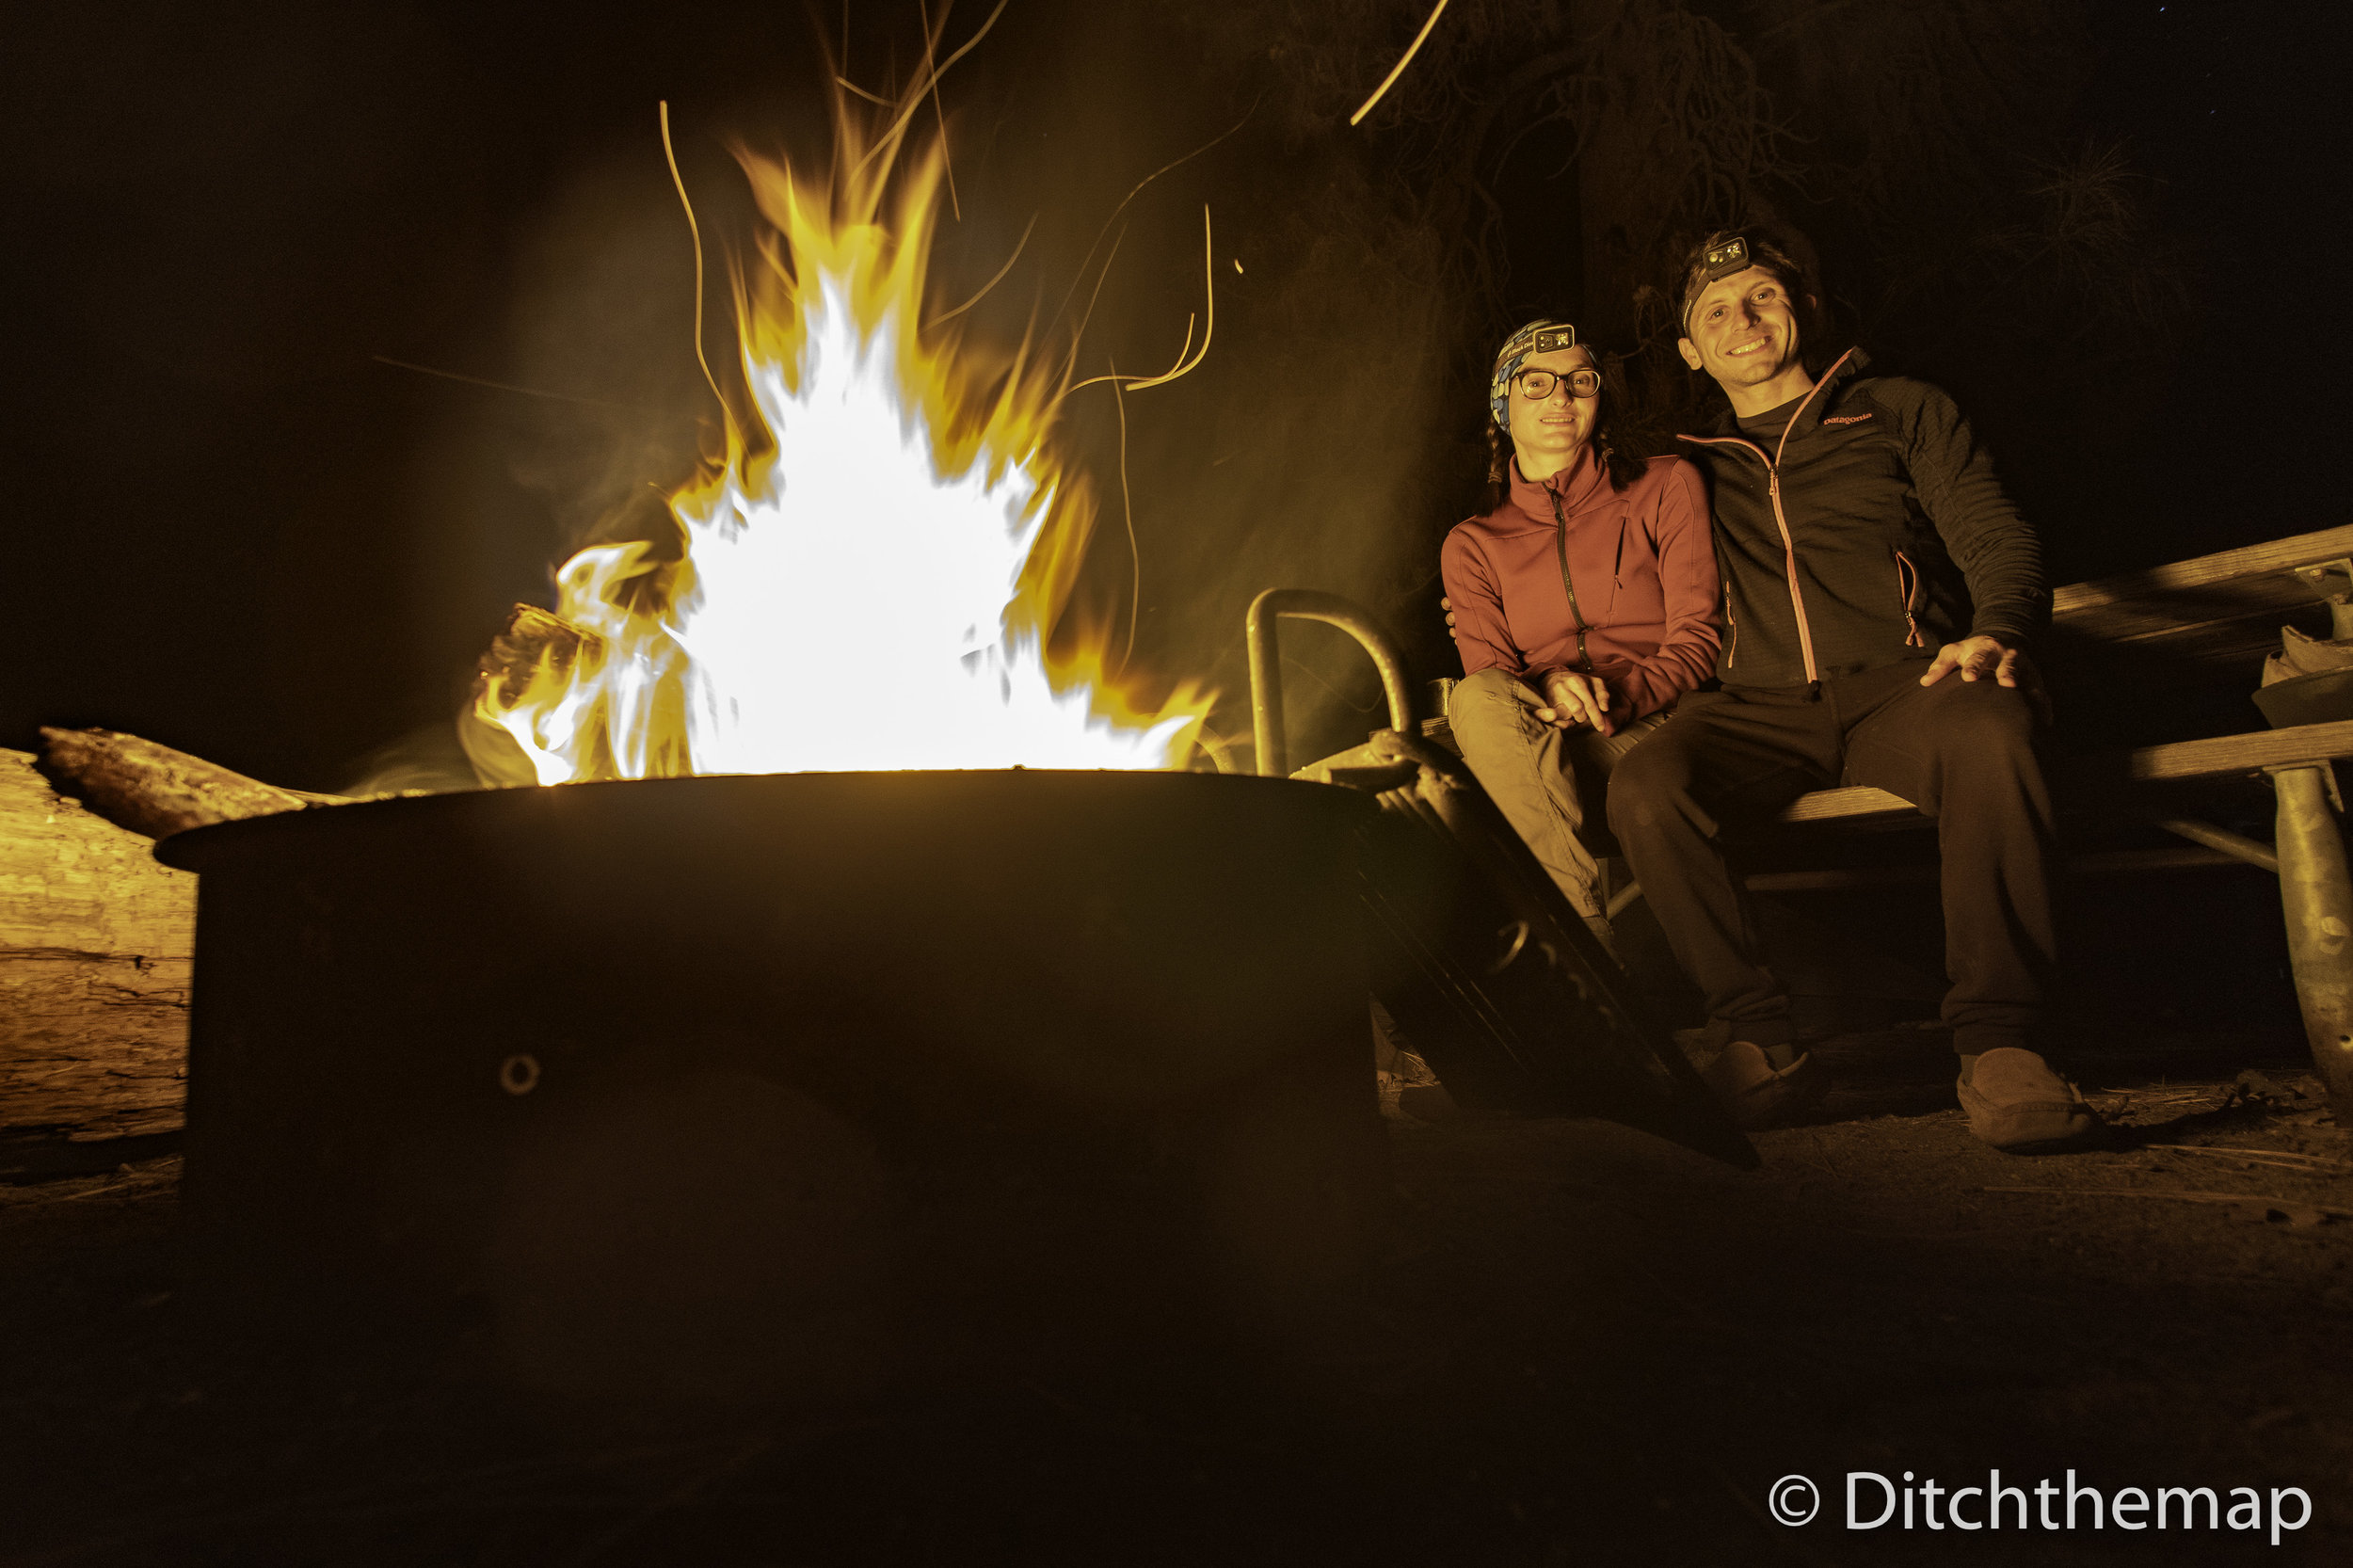 We stay warm by the fire in Yosemite National Park, California